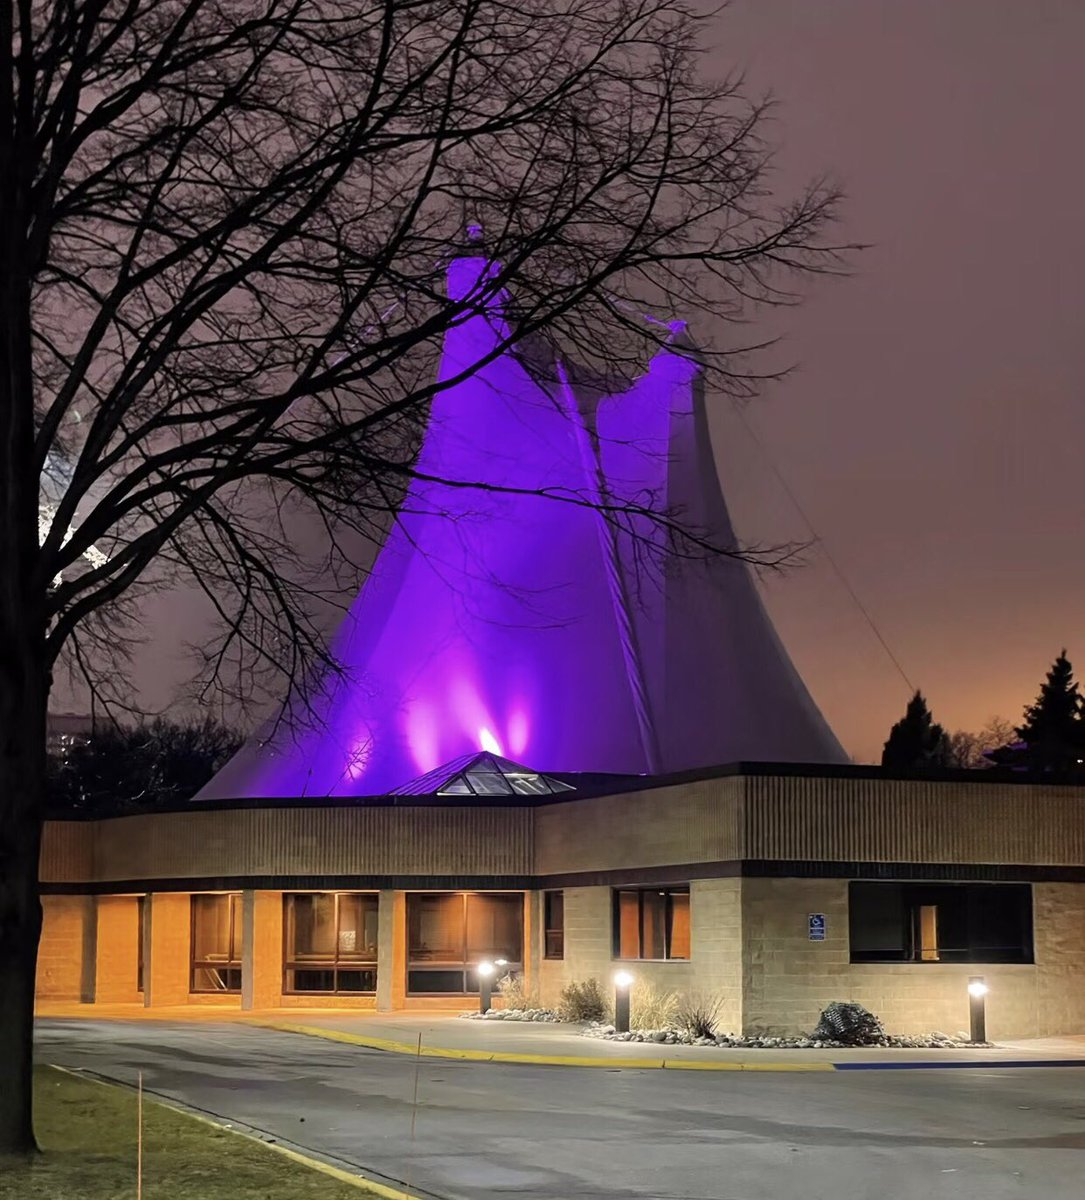 Dozens of landmarks across MN are going purple to honor lives lost to #COVID19 The Hjemkomst Center in Moorhead is doing its part to respect those who passed.